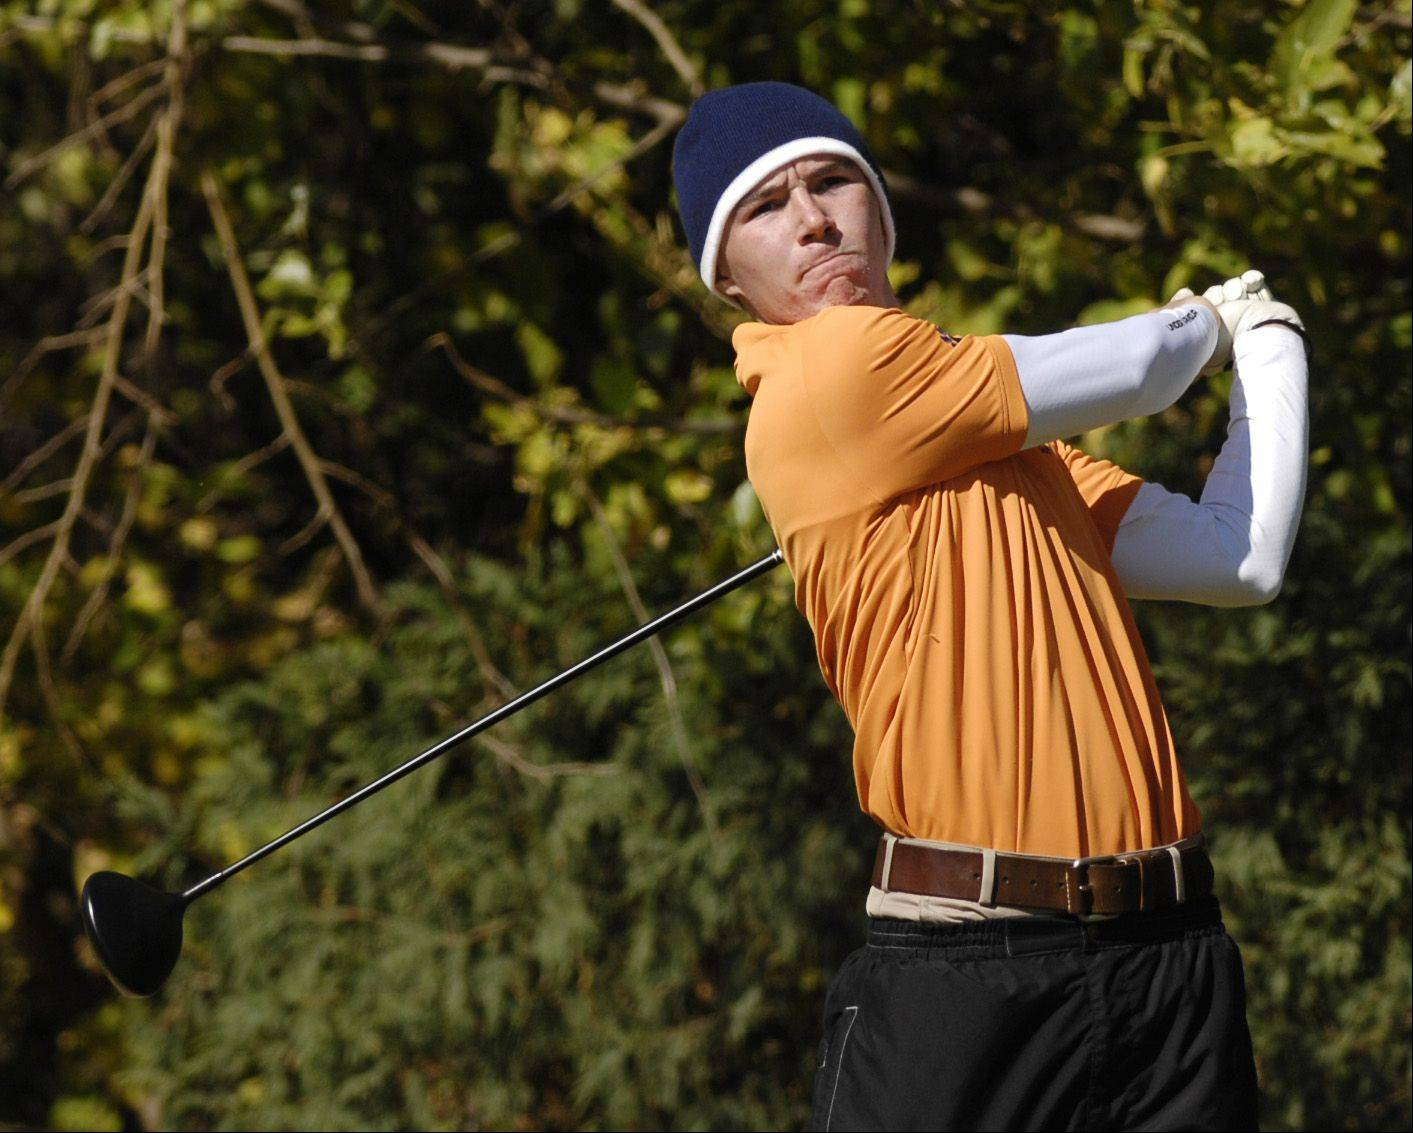 Sean McDonnell of Naperville North tees off during the St. Charles East boys varsity golf sectional at St. Andrews Golf Club in West Chicago, Monday.